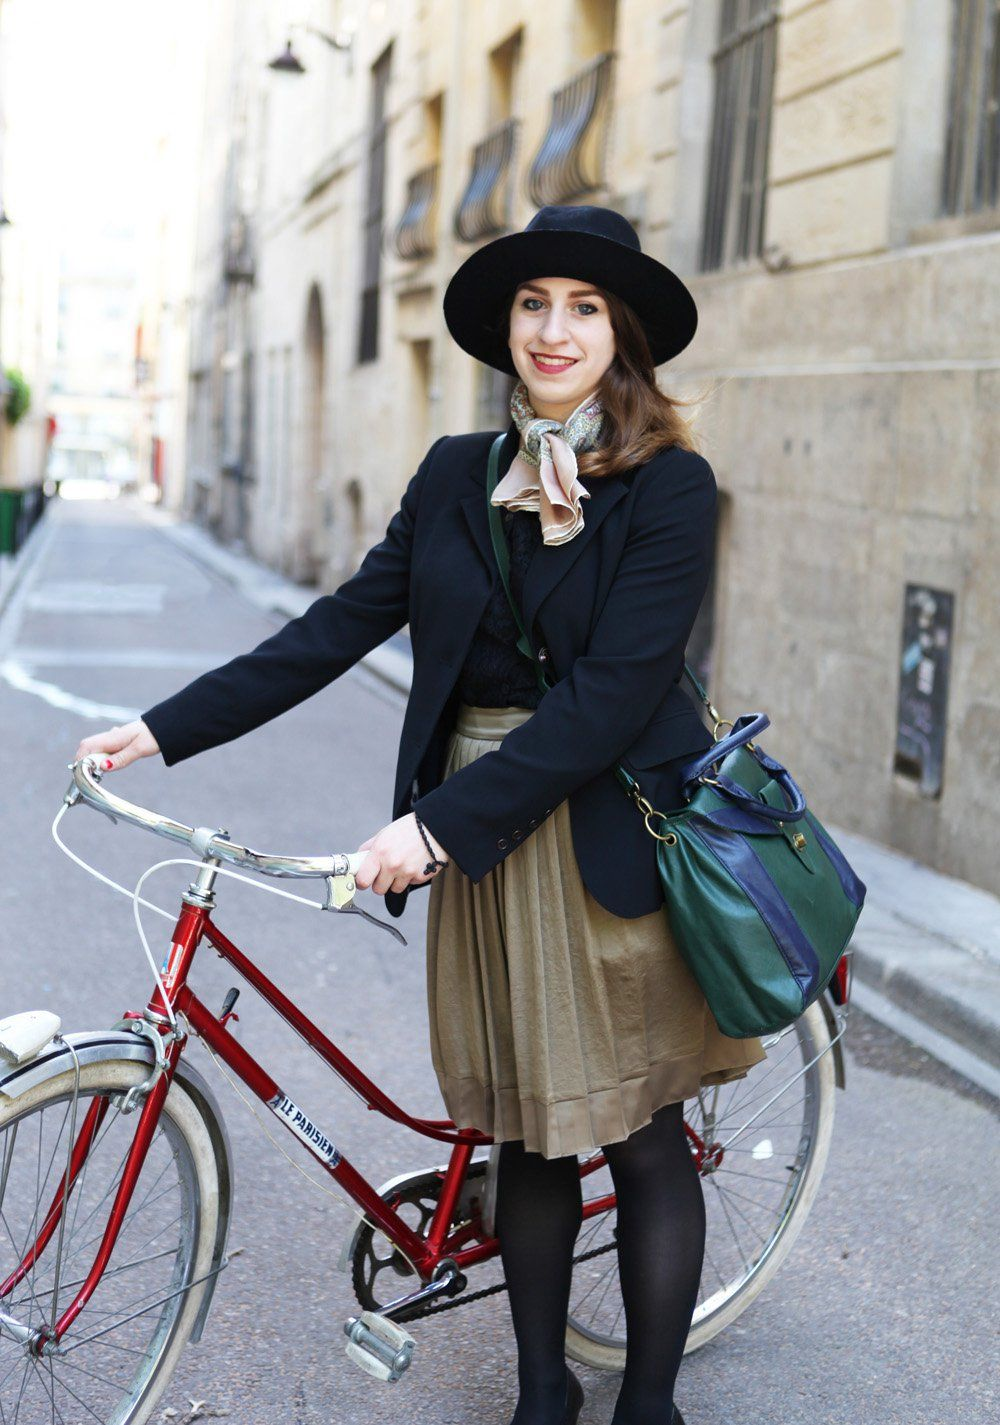 Beret Baguette Street Style Paris Nice Cycle Chic And Street